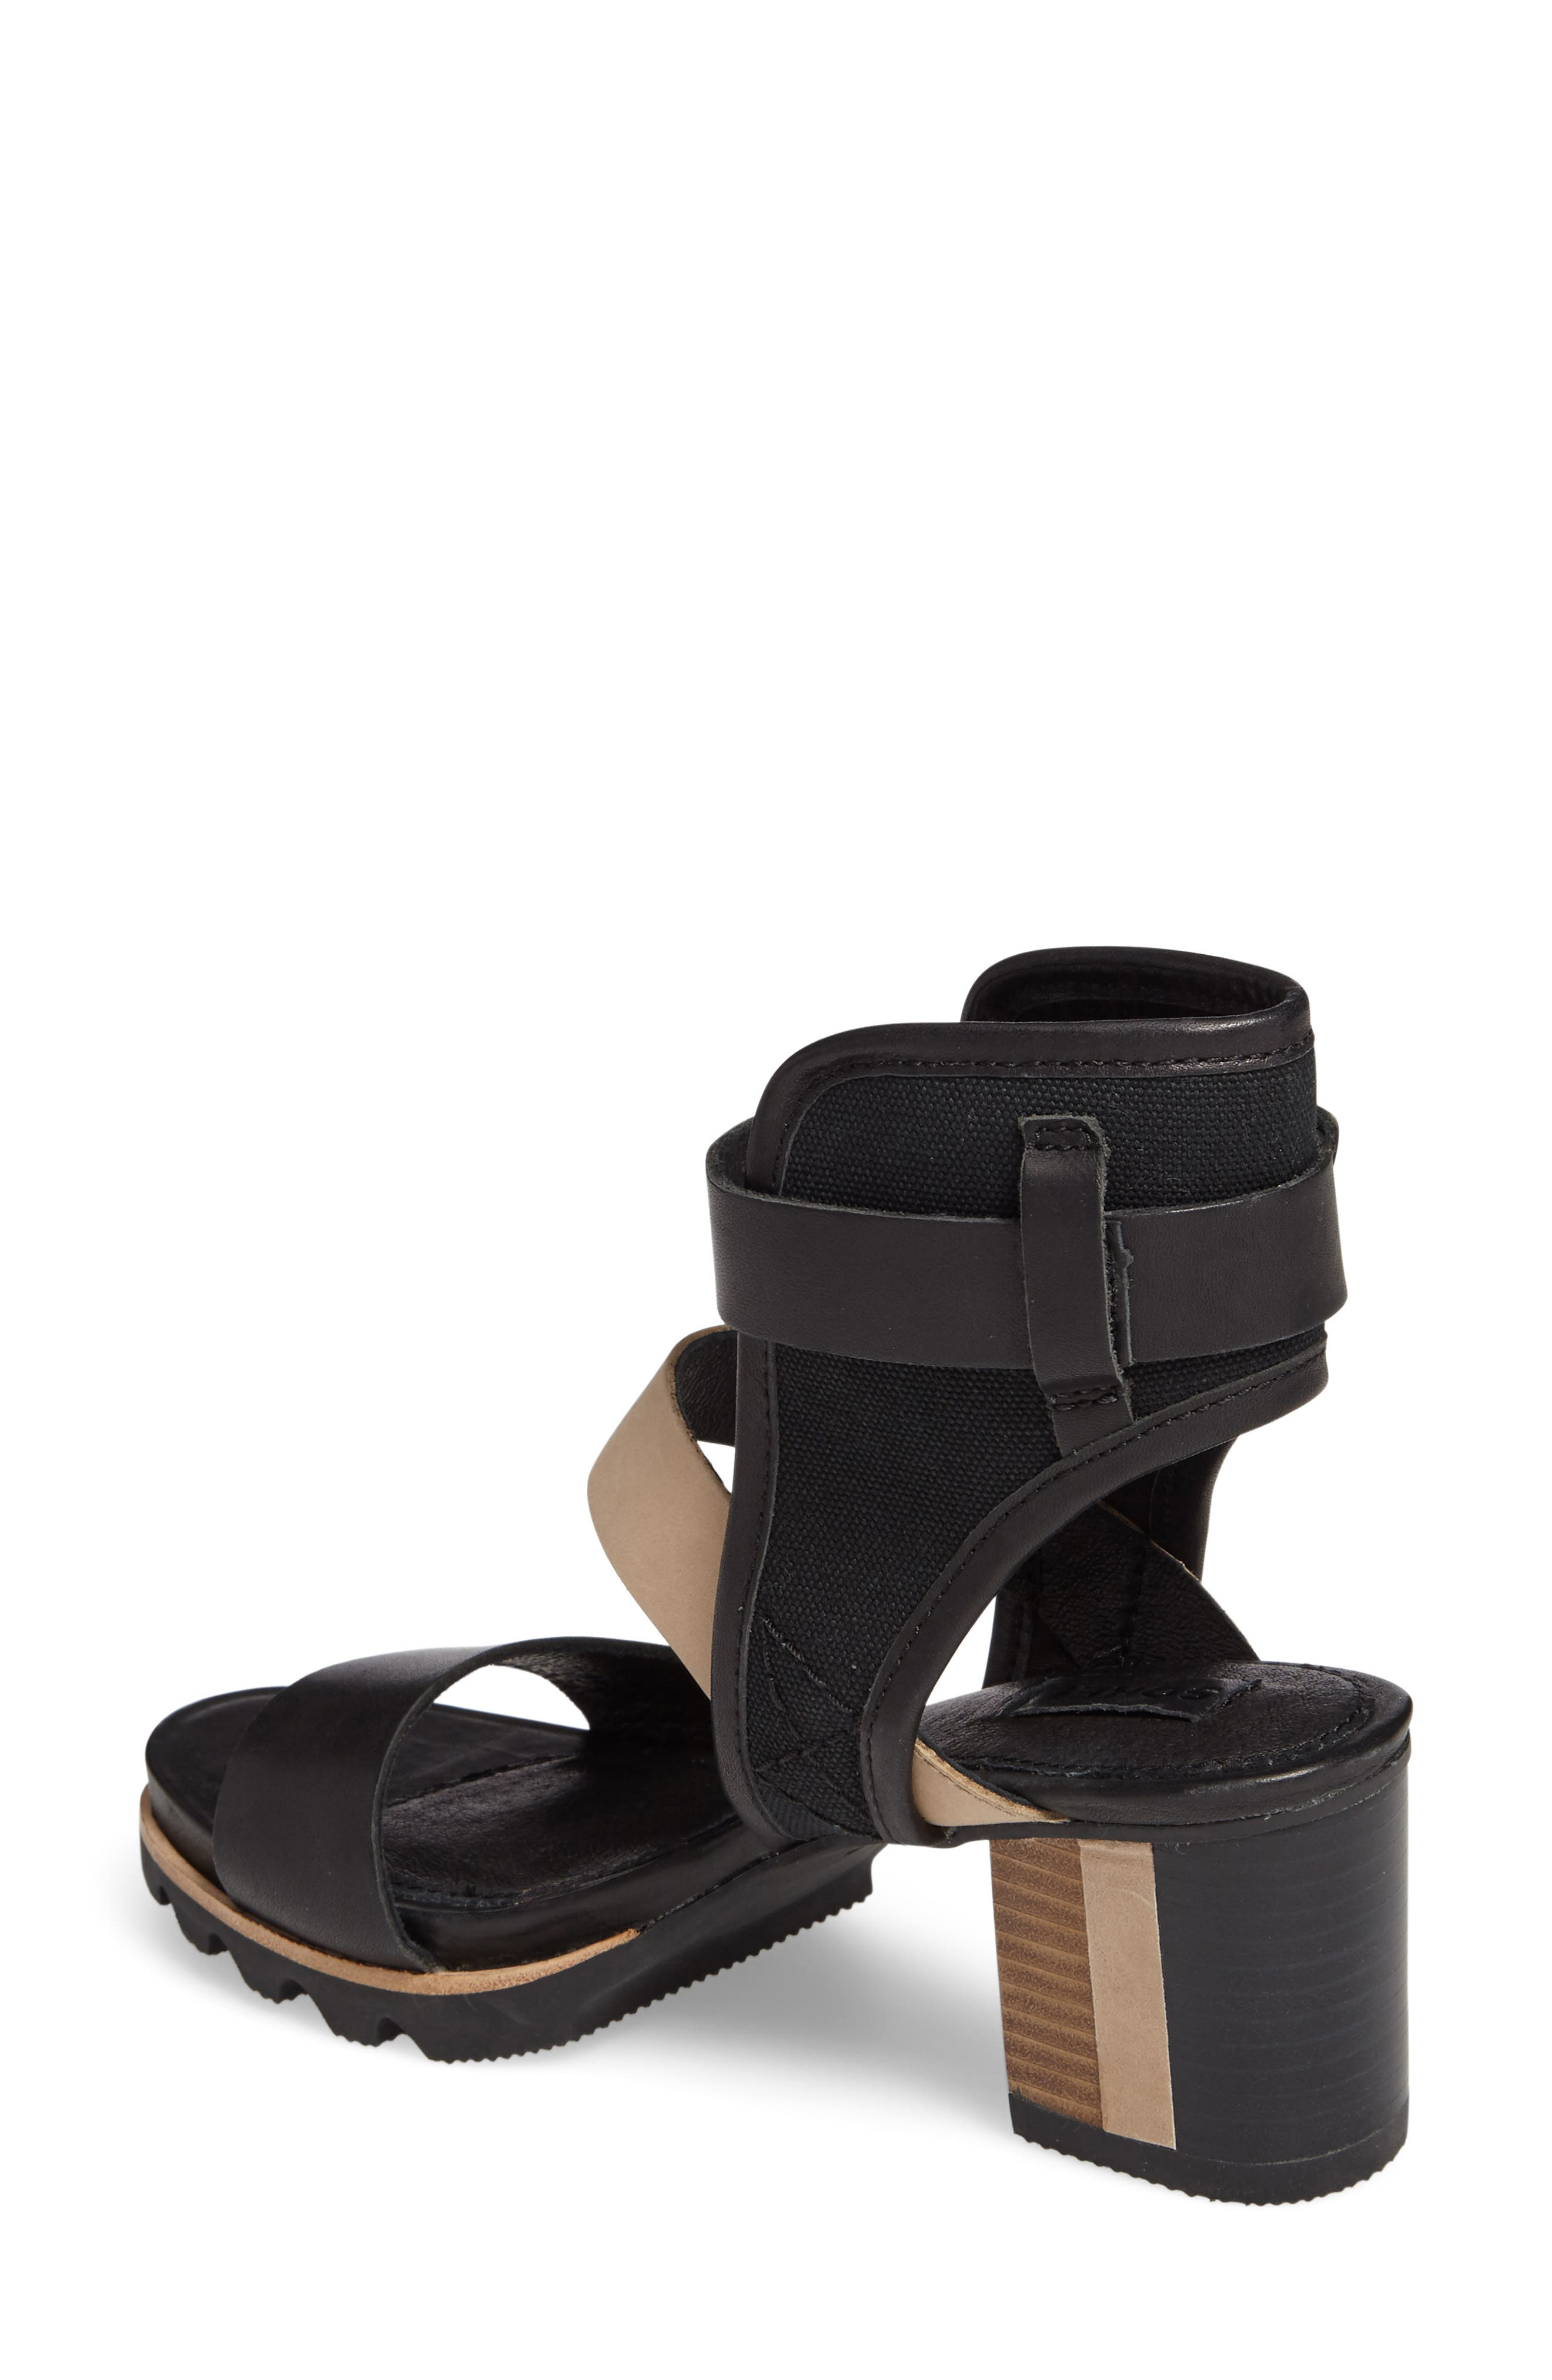 Alternate Image 2  - SOREL Addington Ankle Cuff Sandal (Women)